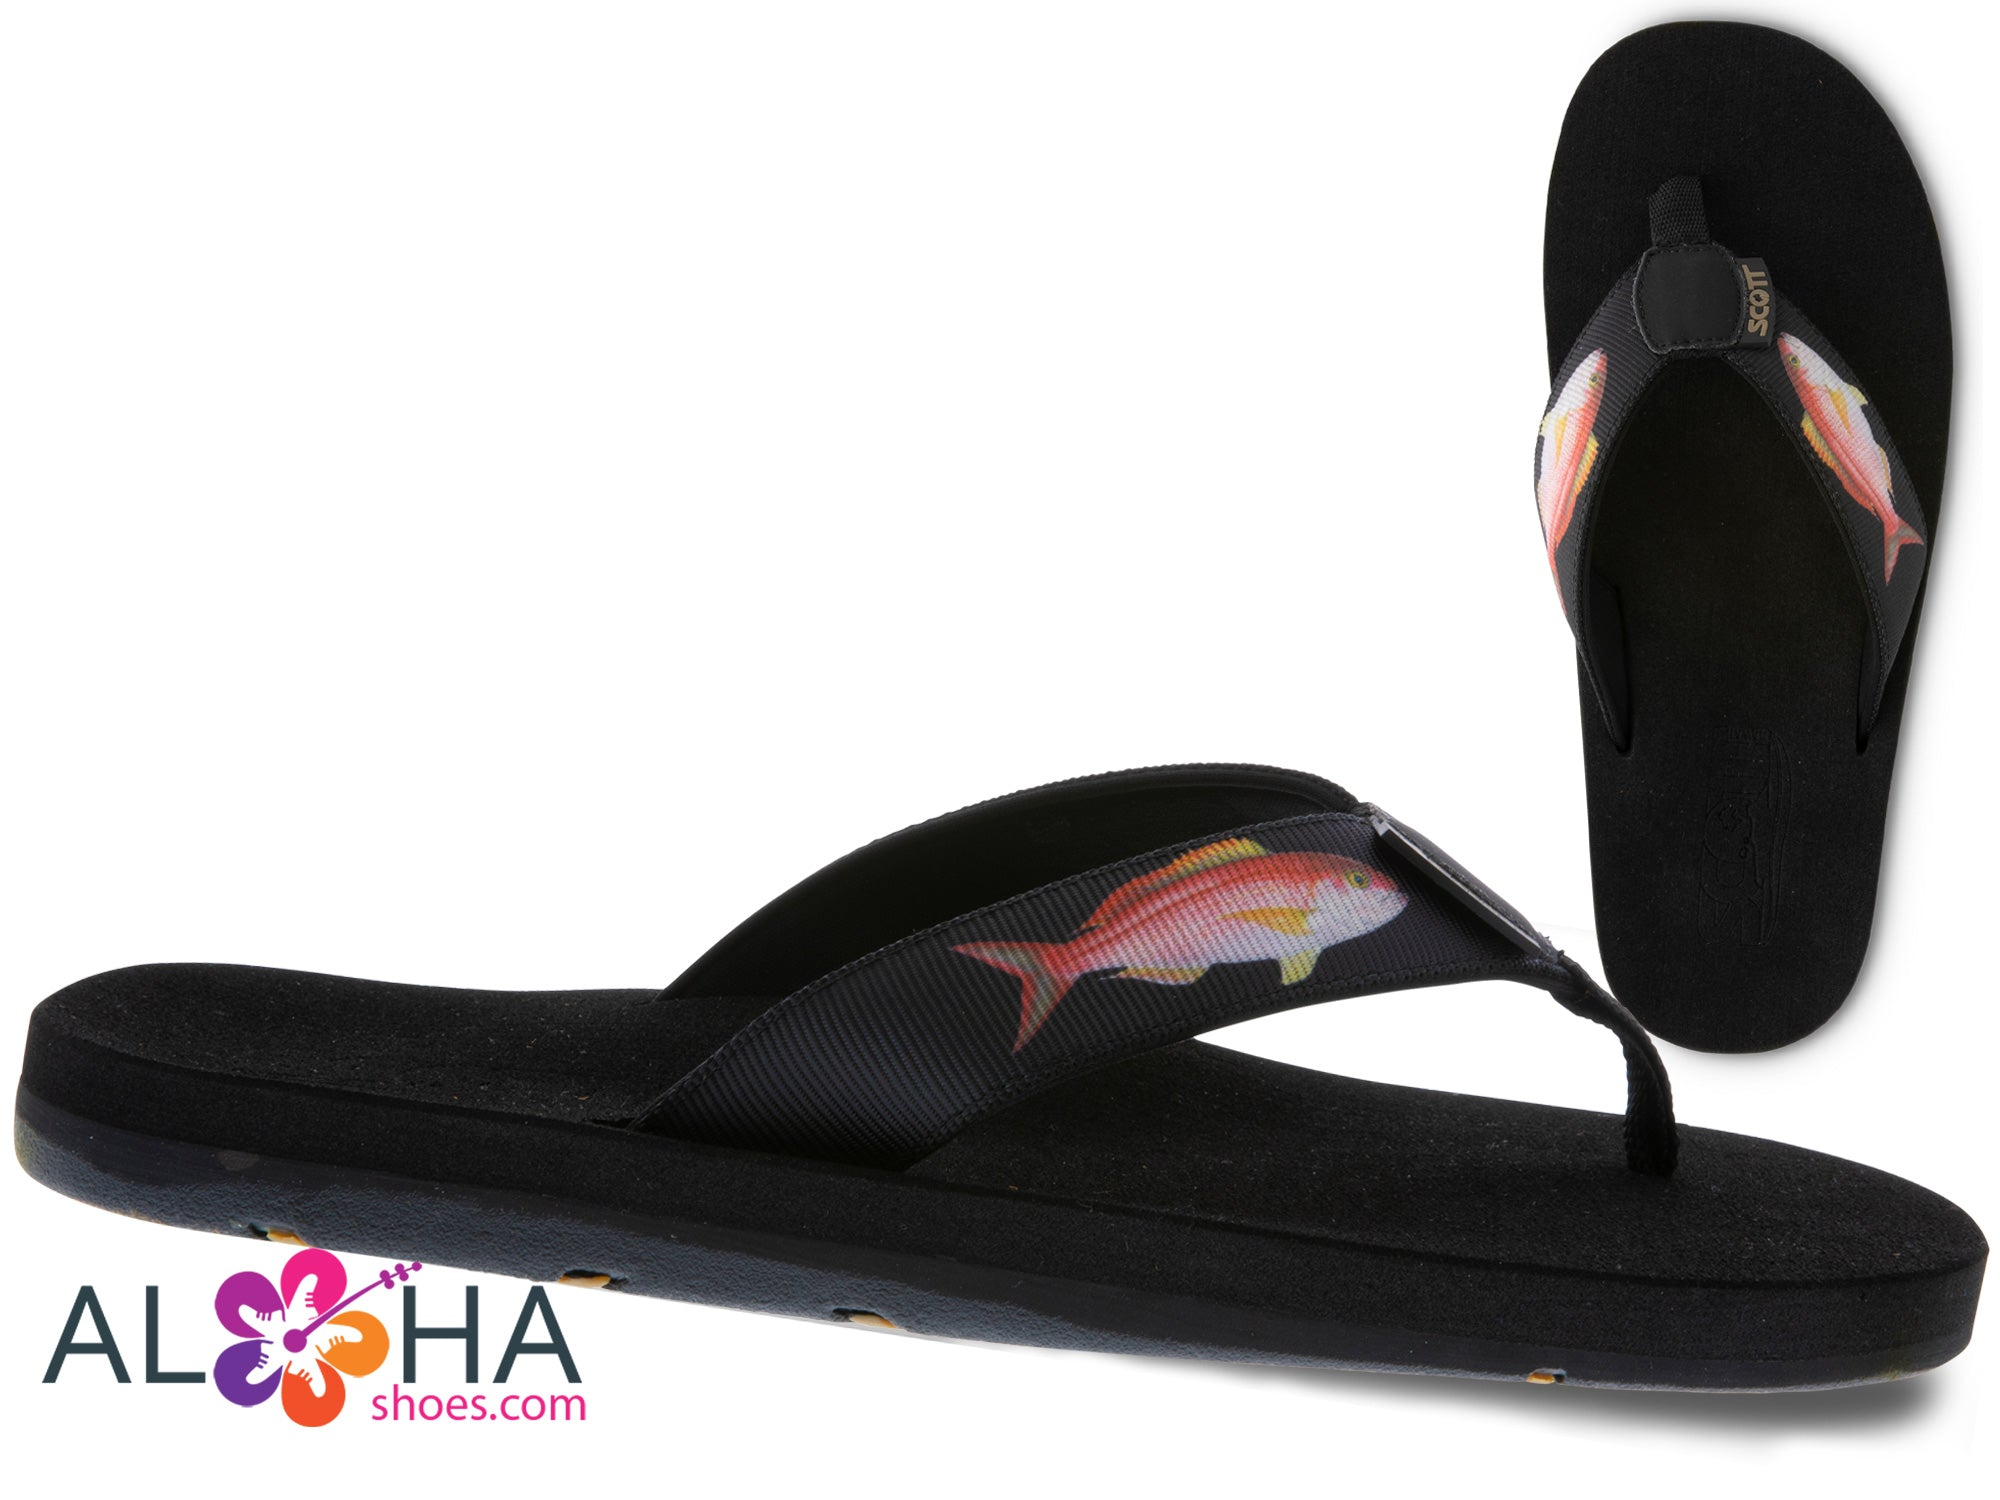 Scott Hawaii Men's Opakapaka Fish Sandal | Custom 2019 Designed - AlohaShoes.com